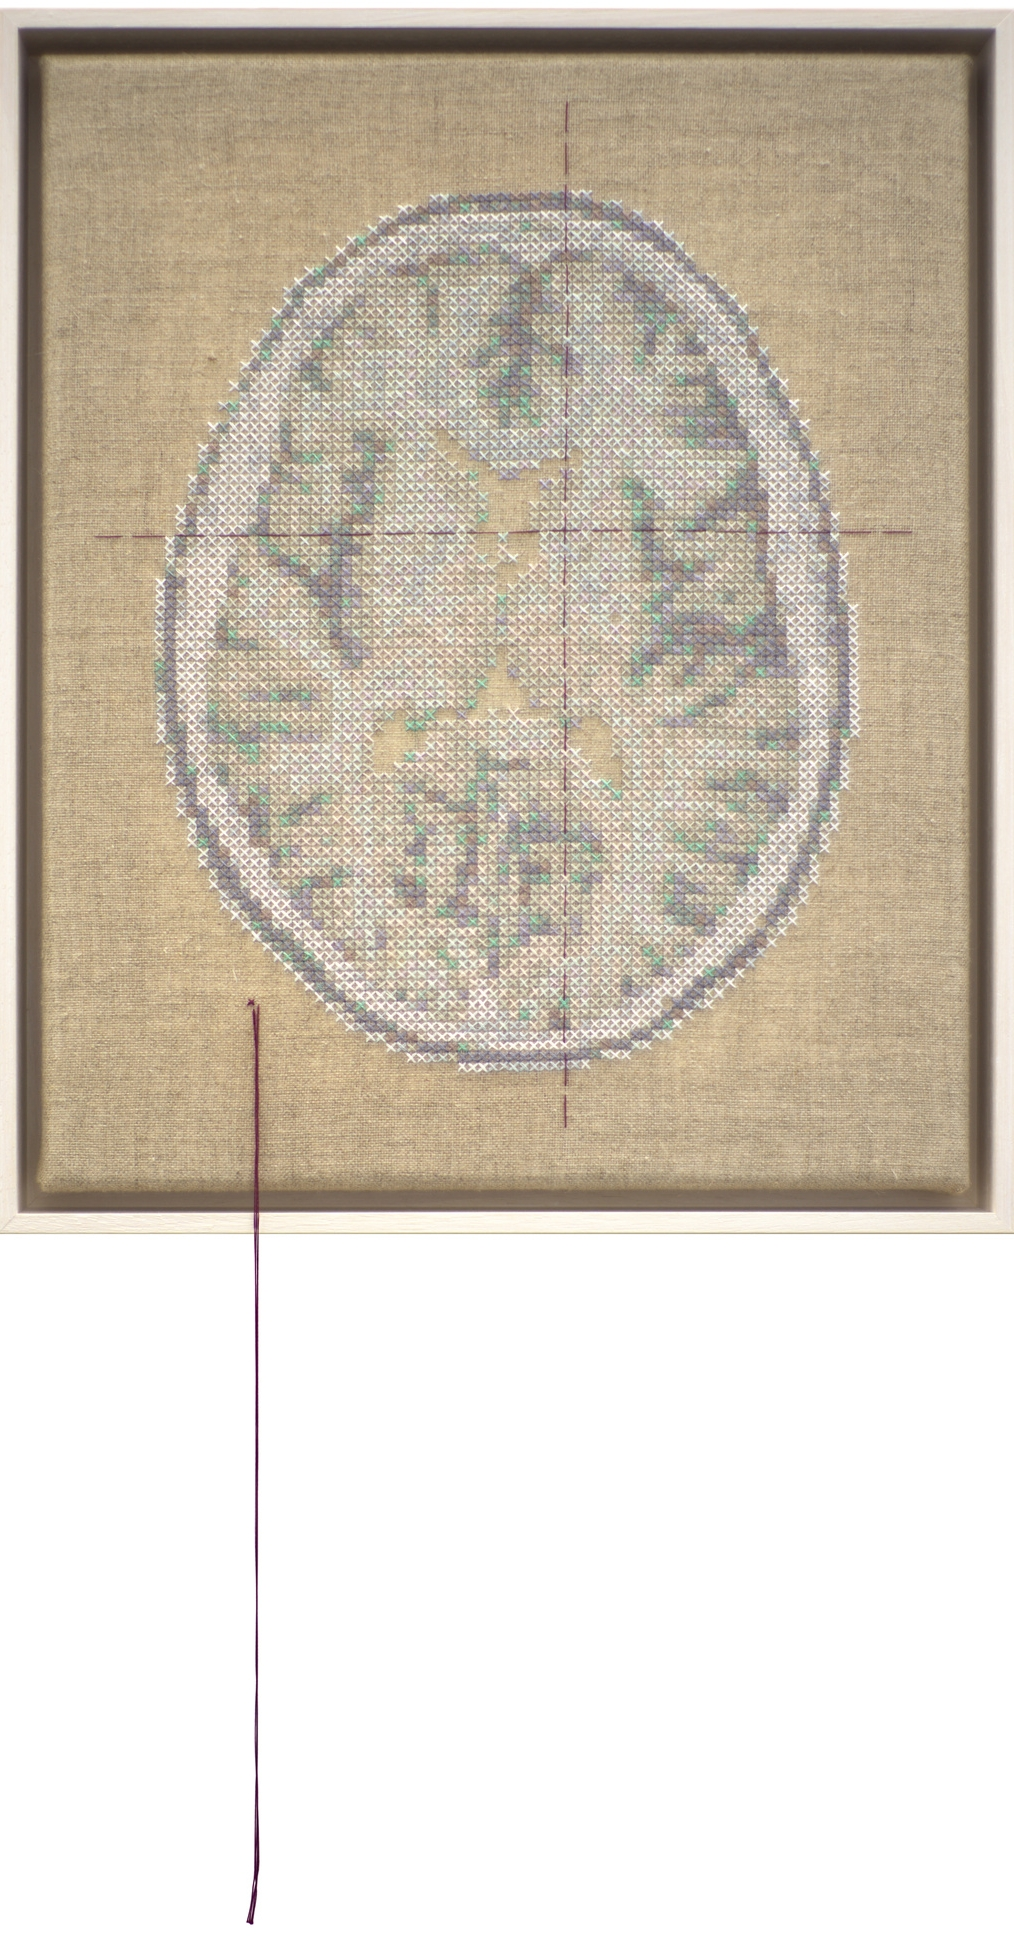 Self Portrait; Artist's Brain Stranded cotton on linen, 2017 410 x 340 mm   Stitching time 49 hours 55 minutes    photo Bob Newman